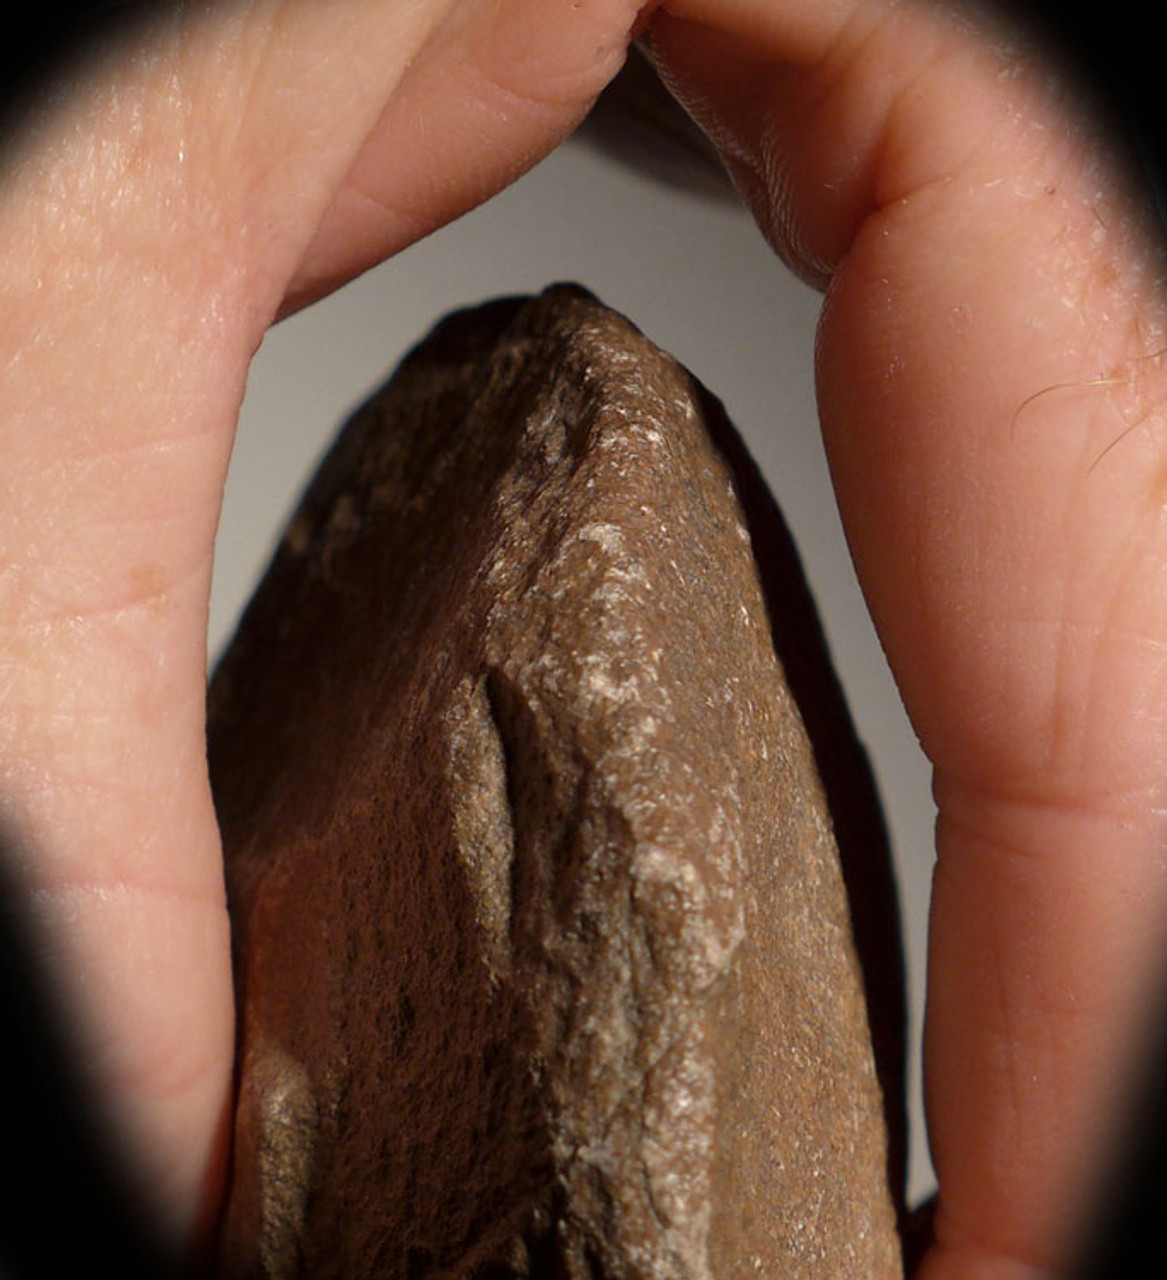 ACH214 - PREHISTORIC ACHEULIAN CORDIFORM HANDAXE OF EXCEPTIONAL WORKMANSHIP MADE BY HOMO ERGASTER (ERECTUS)